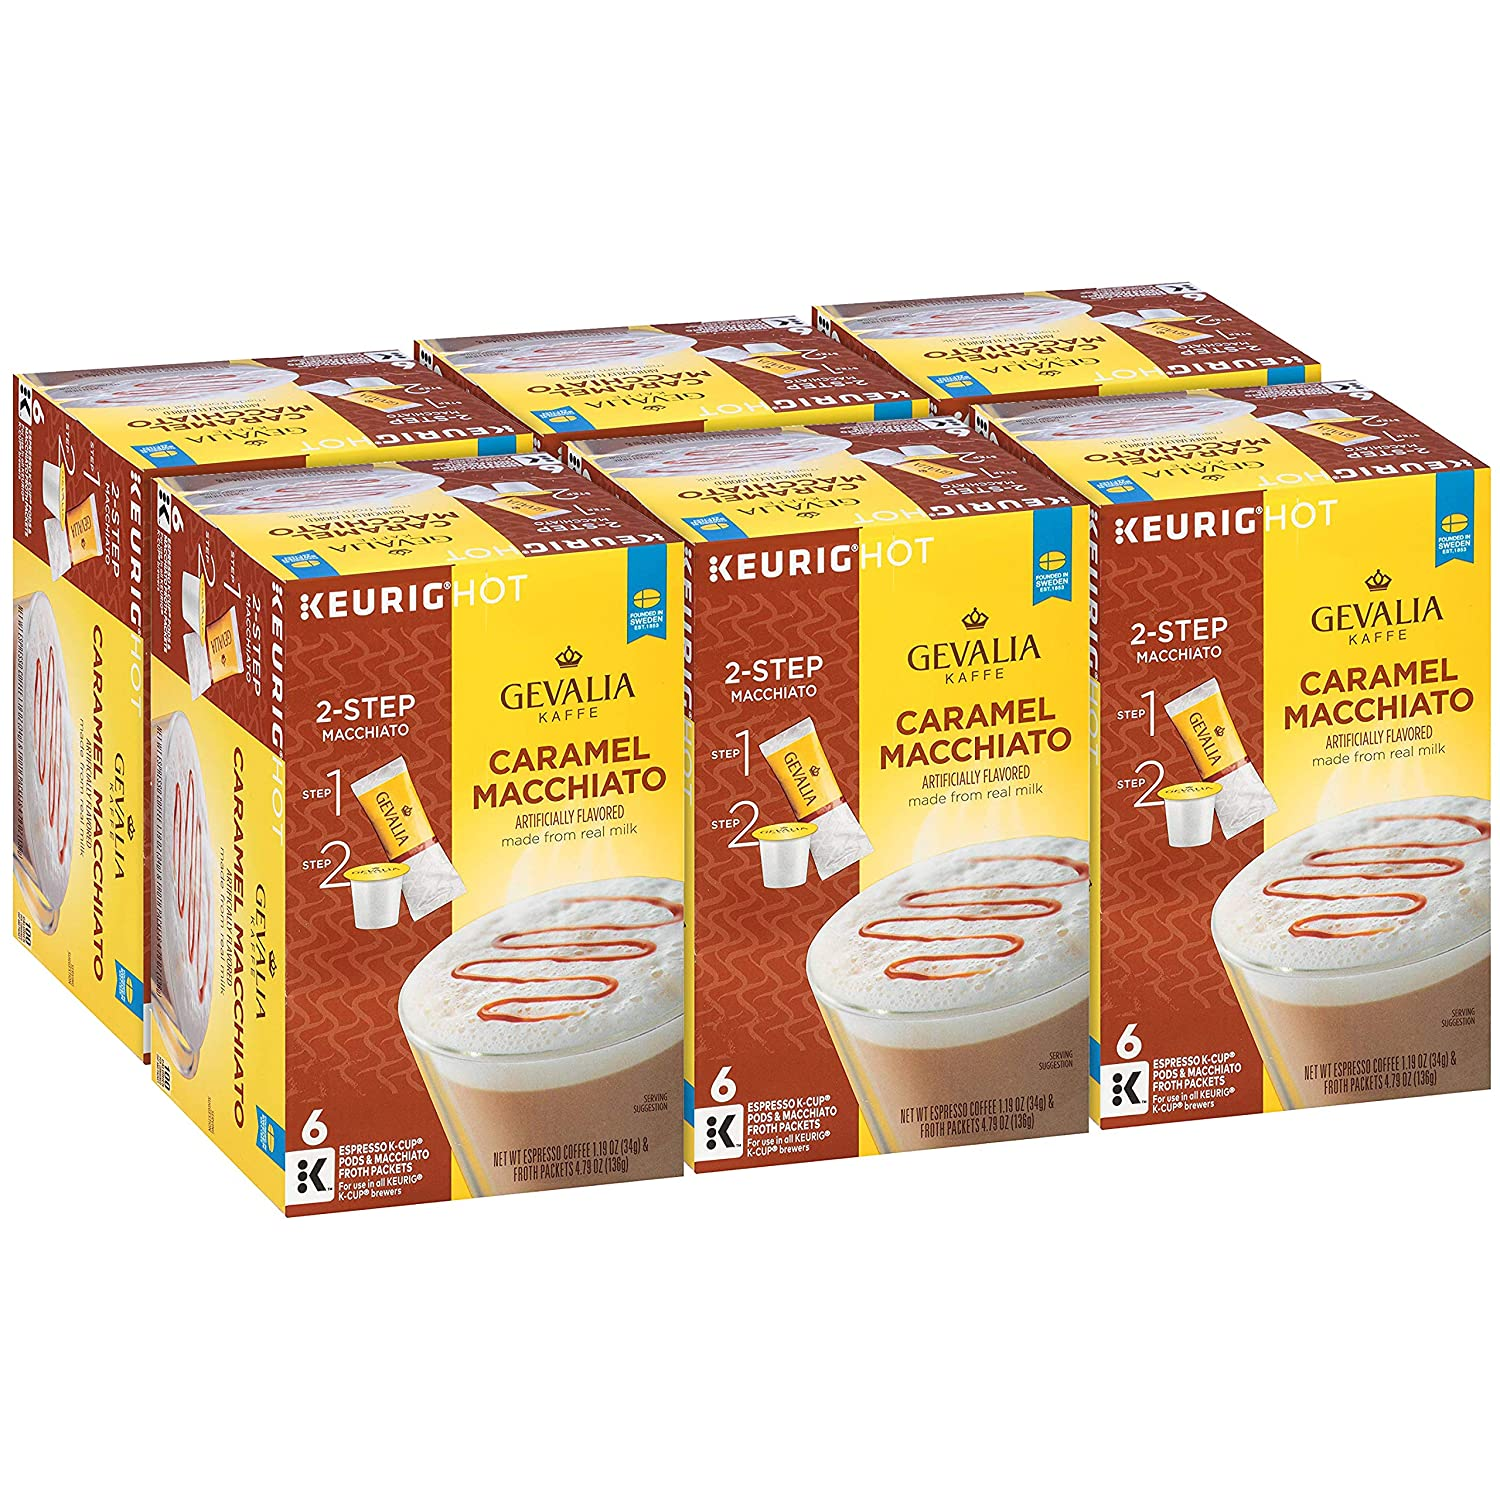 GEVALIA Caramel Macchiato Latte Coffee, K-CUP Pods, 5.98 oz, (36 Count,Pack - 6)